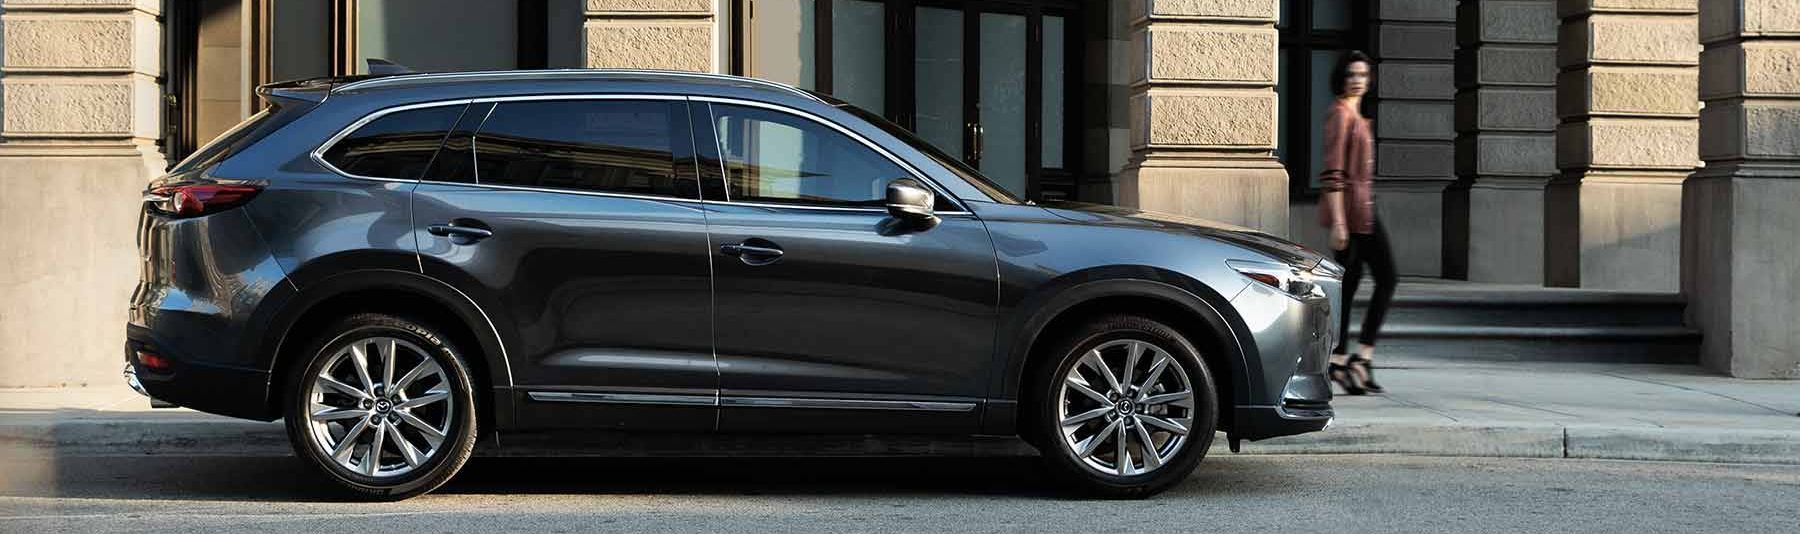 2019 Mazda CX-9 Leasing in San Antonio, TX